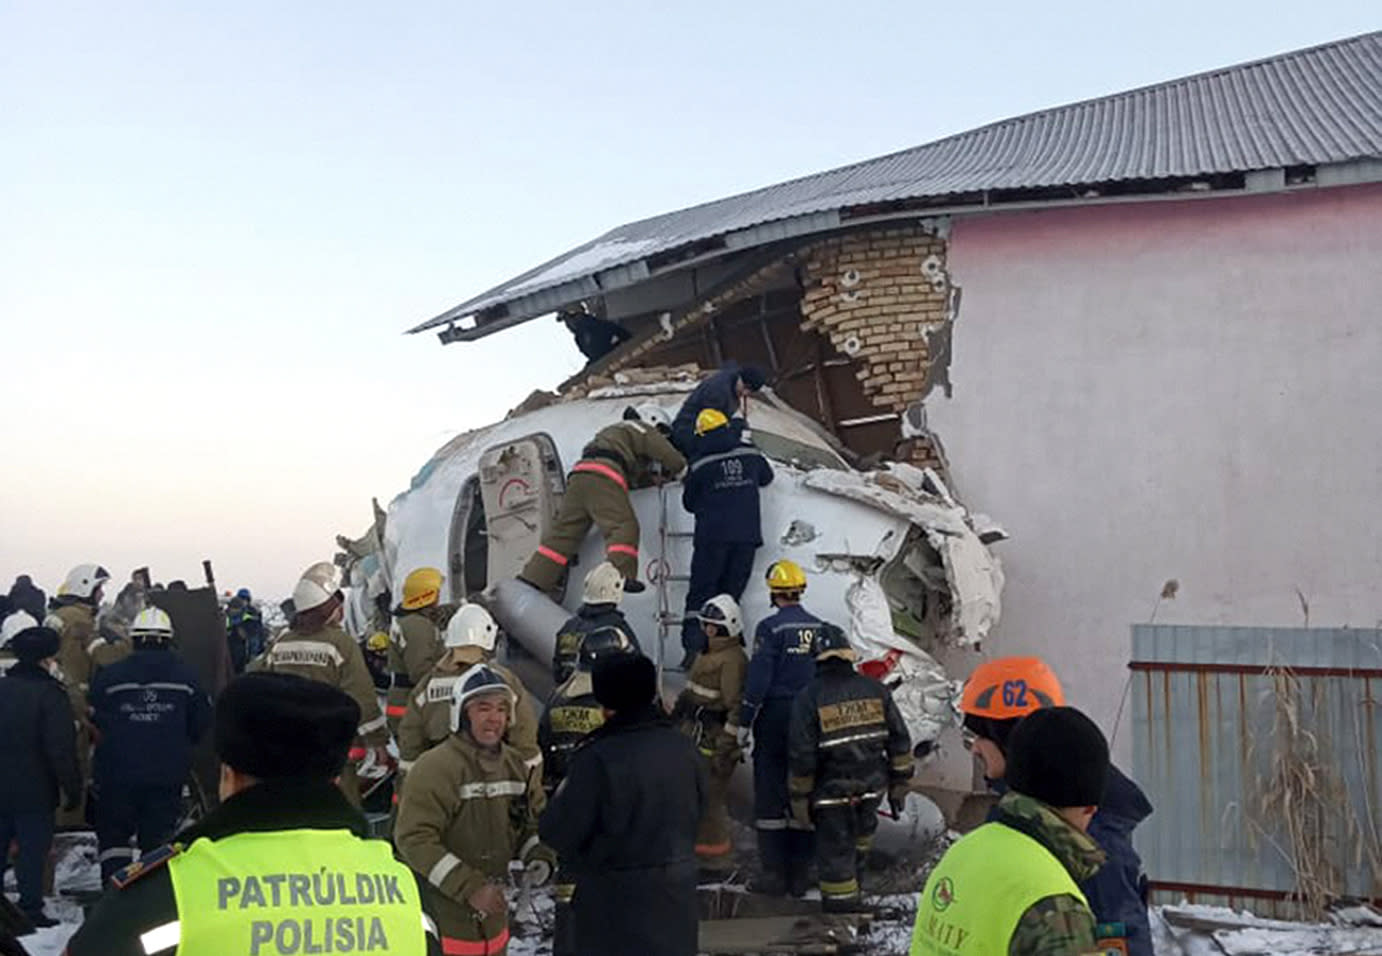 In this photo provided by the Emergency Situations Ministry of the Republic of Kazakhstan, police and rescuers work on the side of a plane crashed near Almaty International Airport, outside Almaty, Kazakhstan, Friday, Dec. 27, 2019. Almaty International Airport said a Bek Air plane crashed Friday in Kazakhstan shortly after takeoff causing numerous deaths. (Emergency Situations Ministry of the Republic of Kazakhstan via AP)